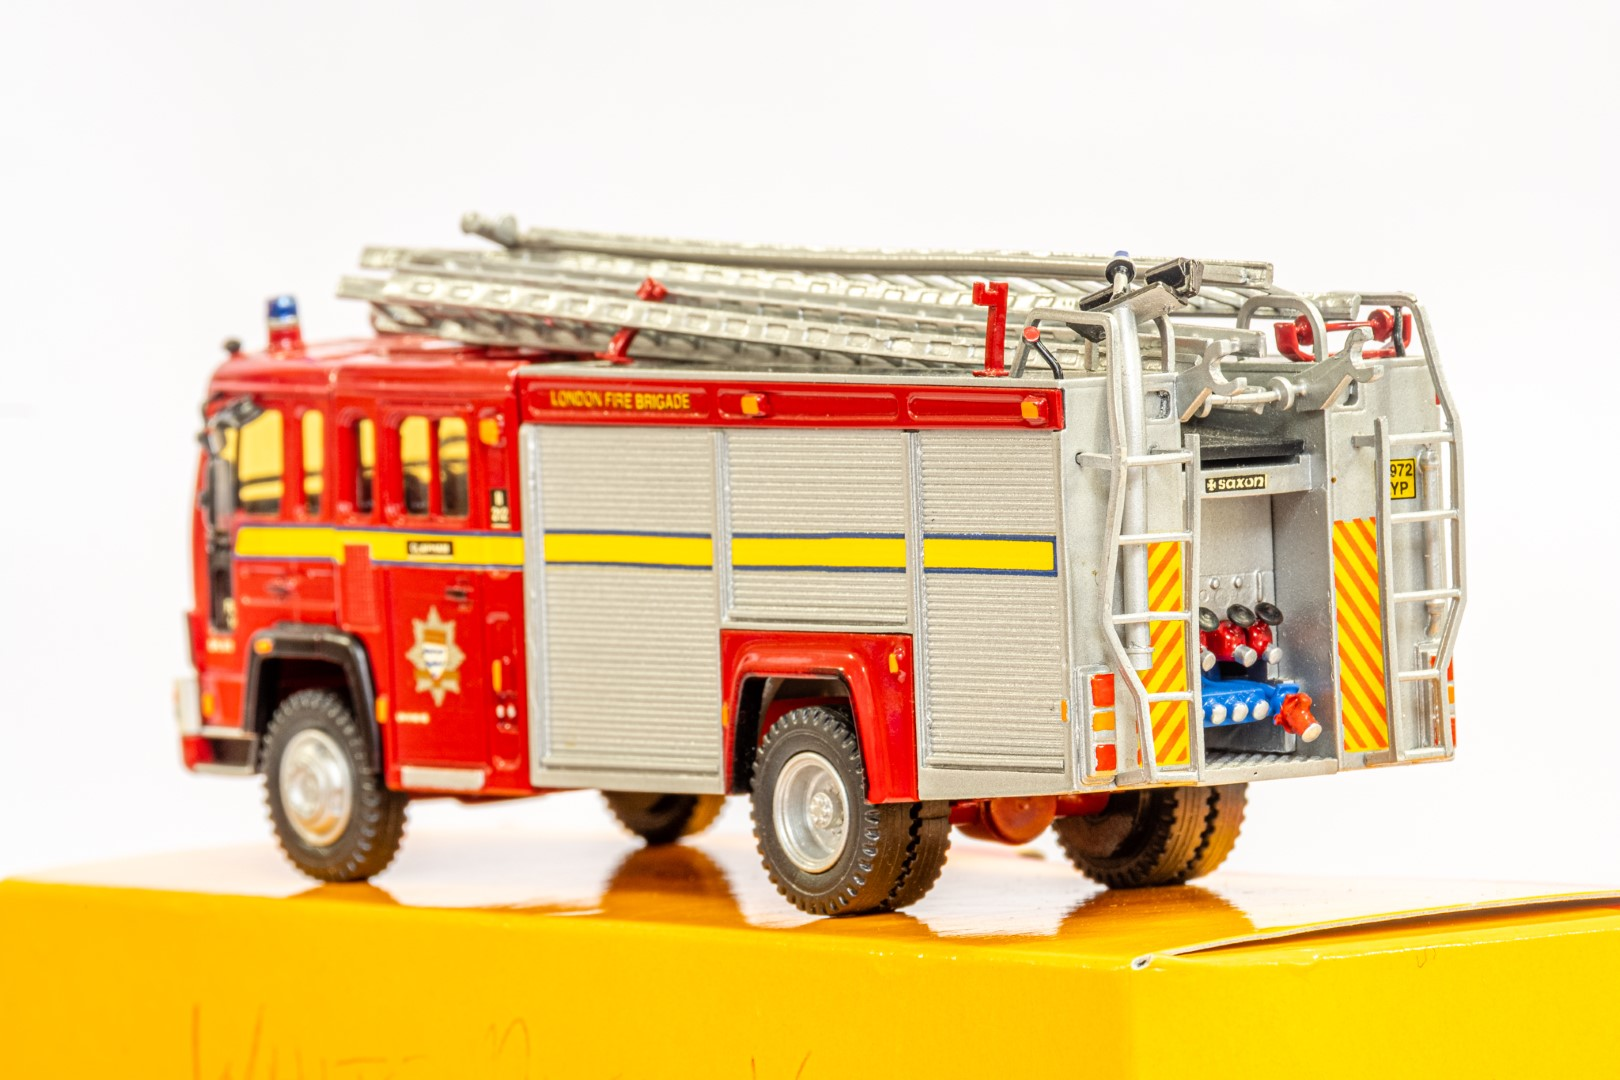 Fire Brigade Models Volvo Fire Engine - Clapham Fire Brigade - In Wrong Box - Image 5 of 7